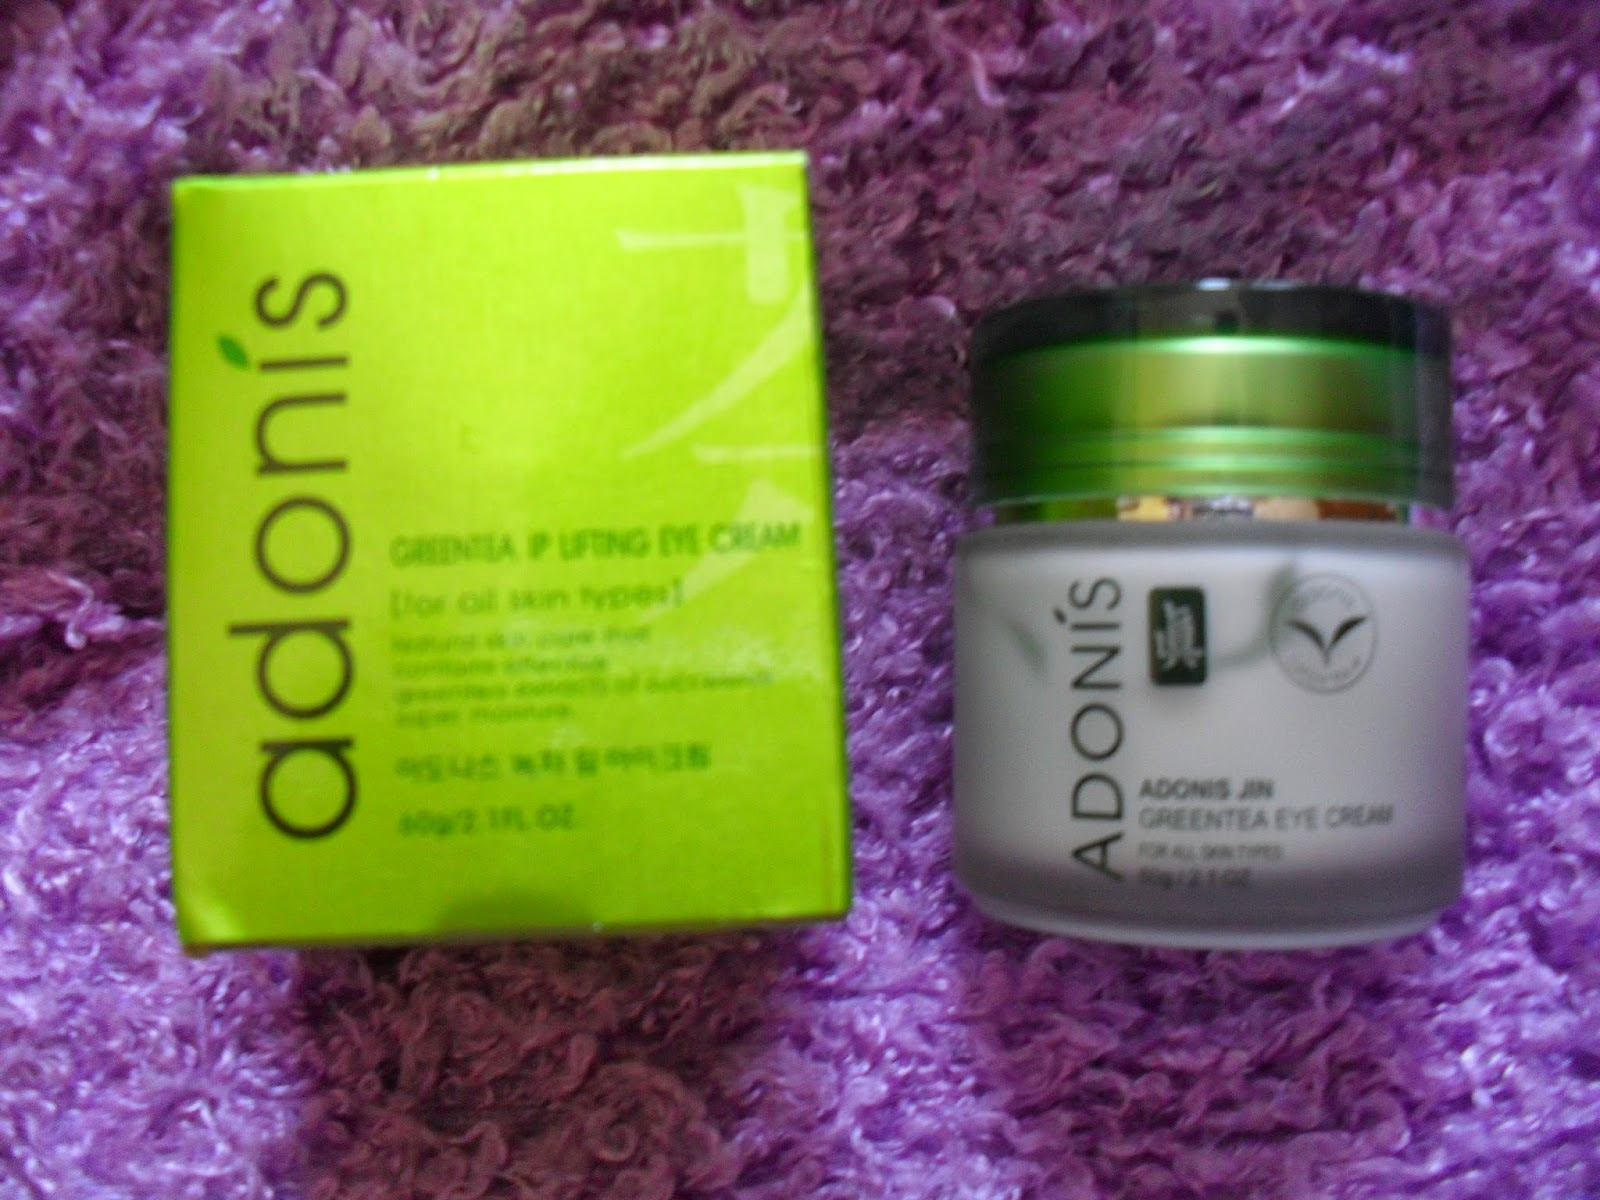 Green Tea & Lifting Eye Cream Adonís